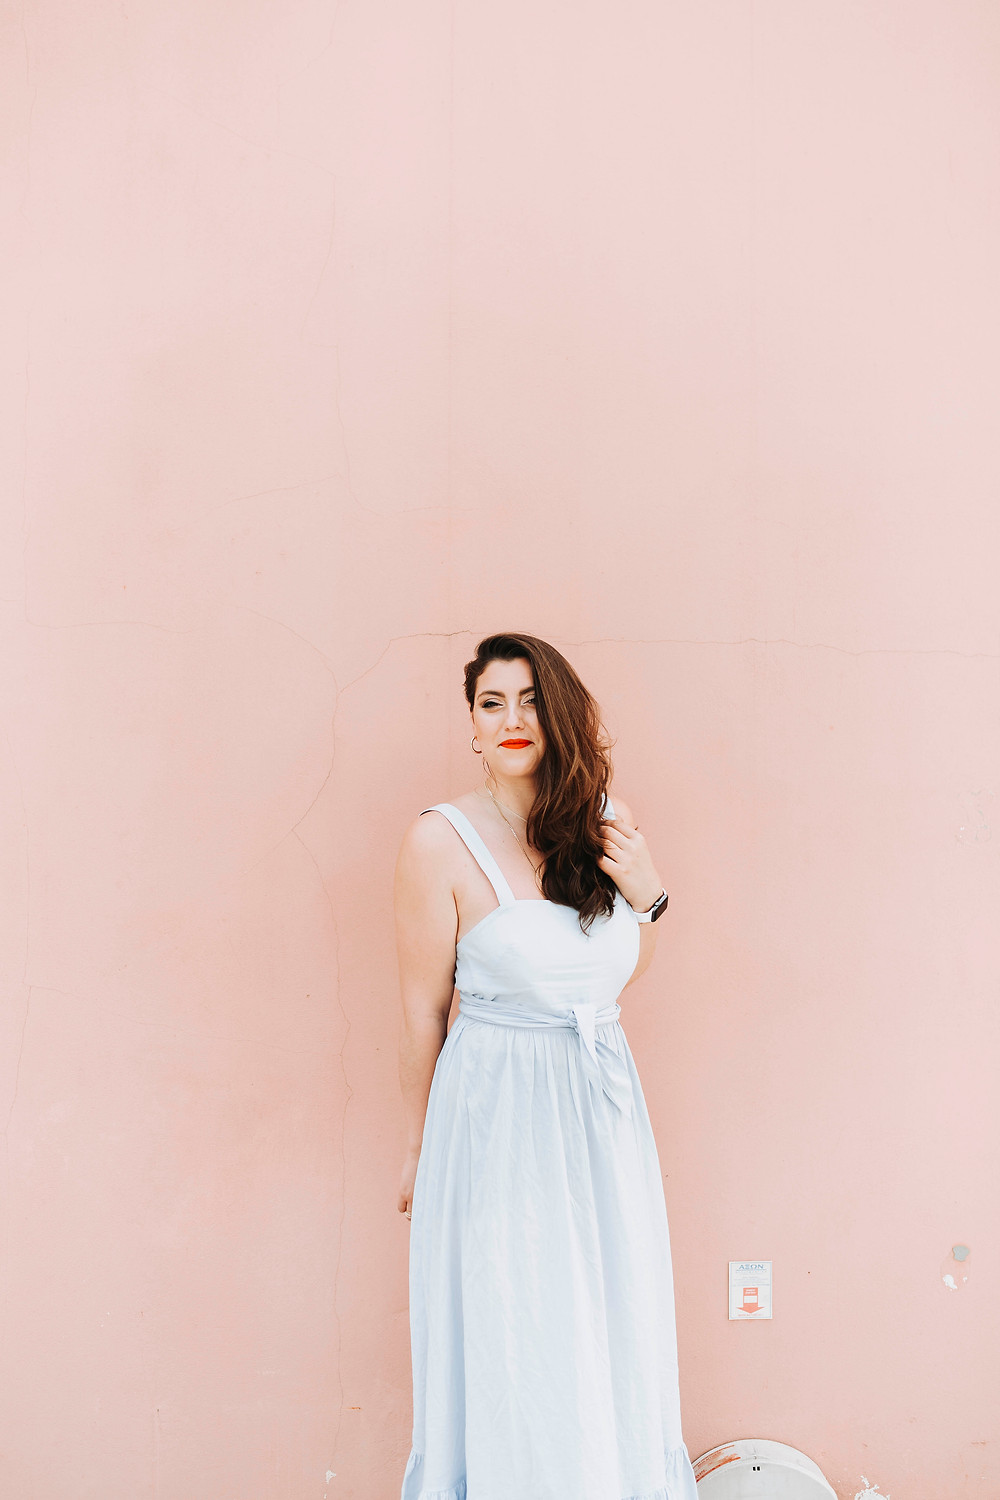 Marika standing in a white dress in front of a pink wall with red lipstick smiling